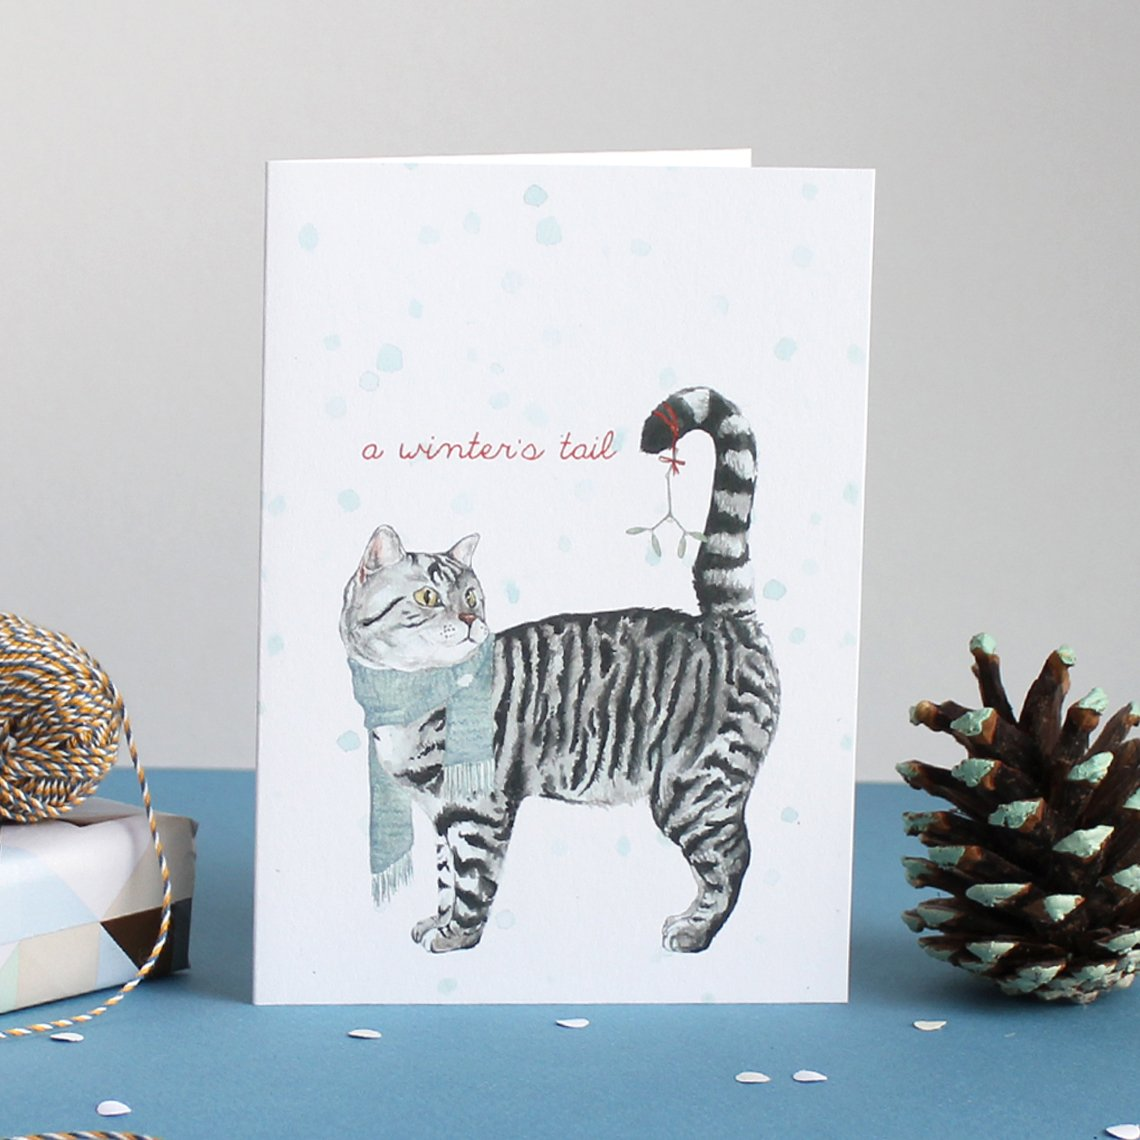 Mister Peebles Christmas Greeting Card 'A Winters Tail'